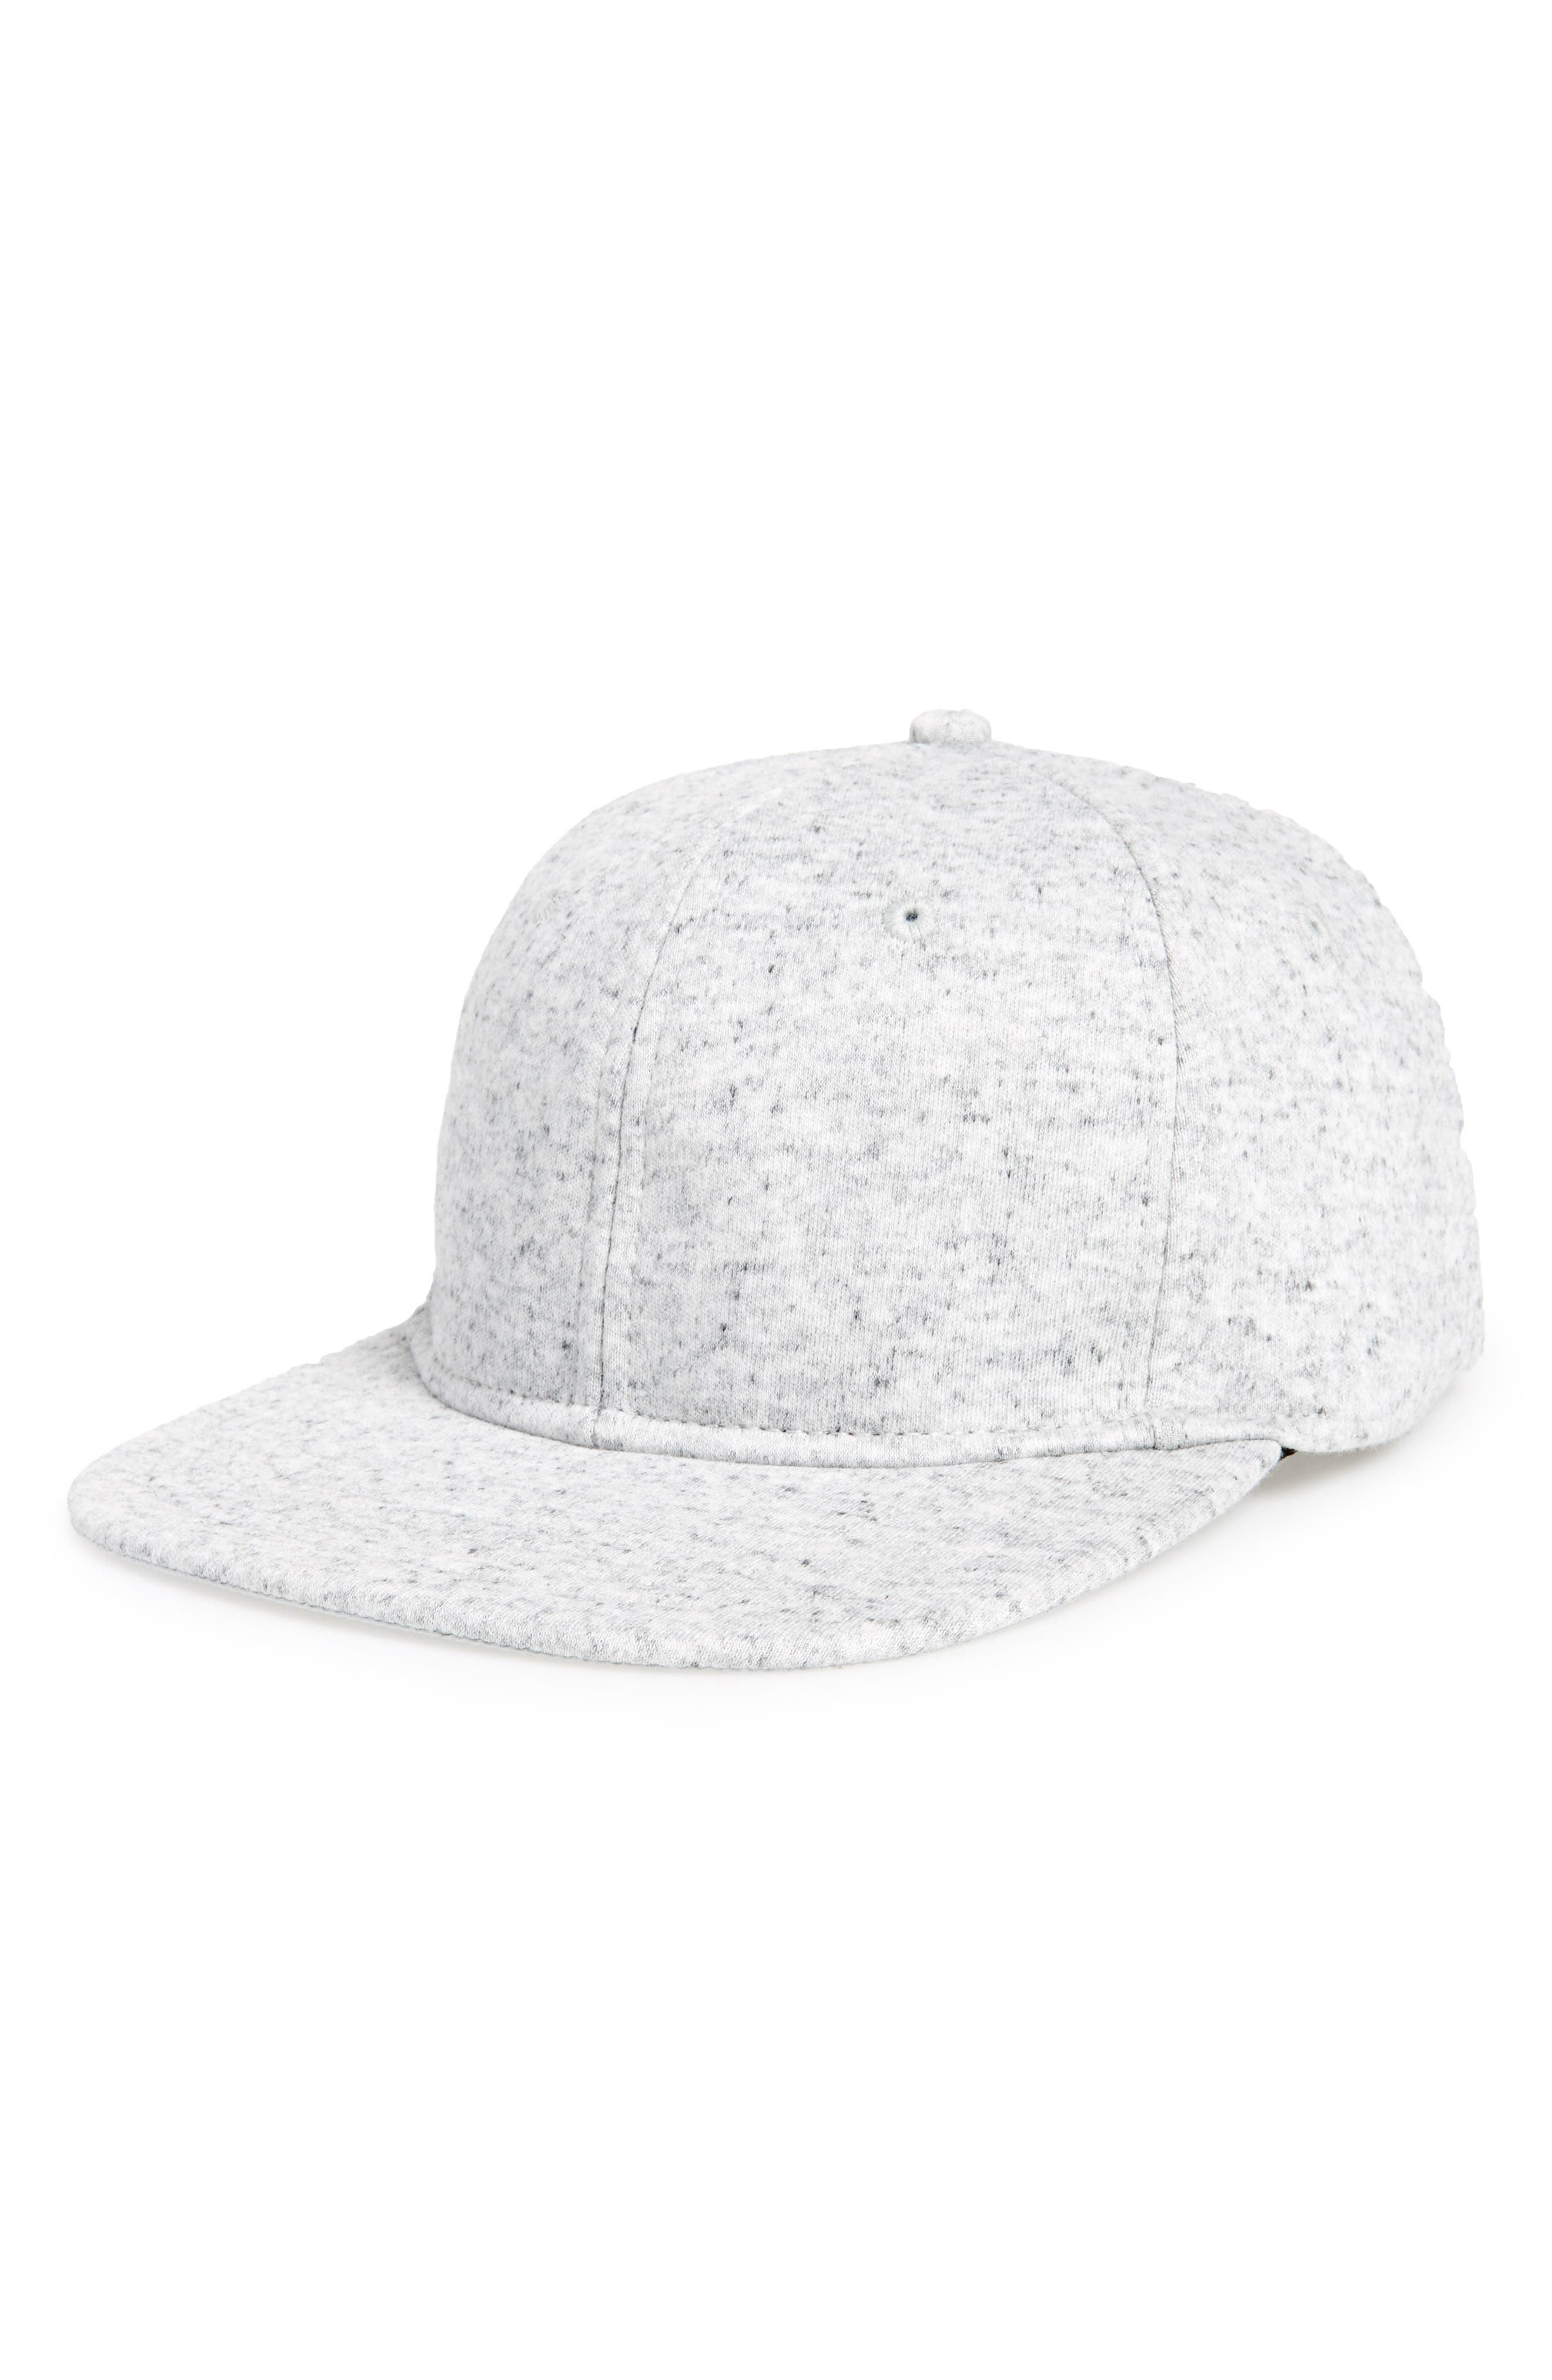 Main Image - Reigning Champ Terry Ball Cap